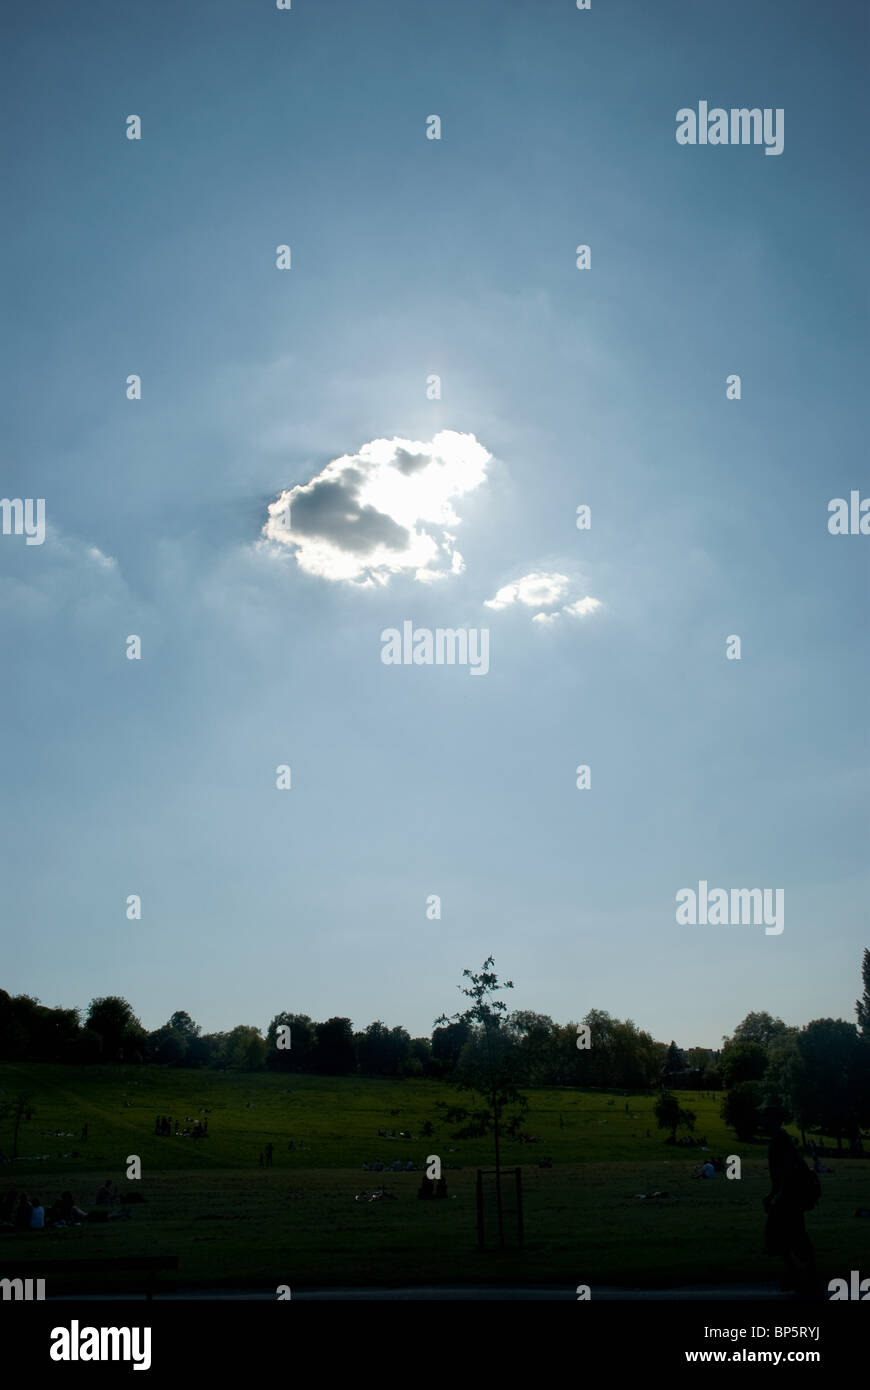 Cloud in front of sun - Stock Image